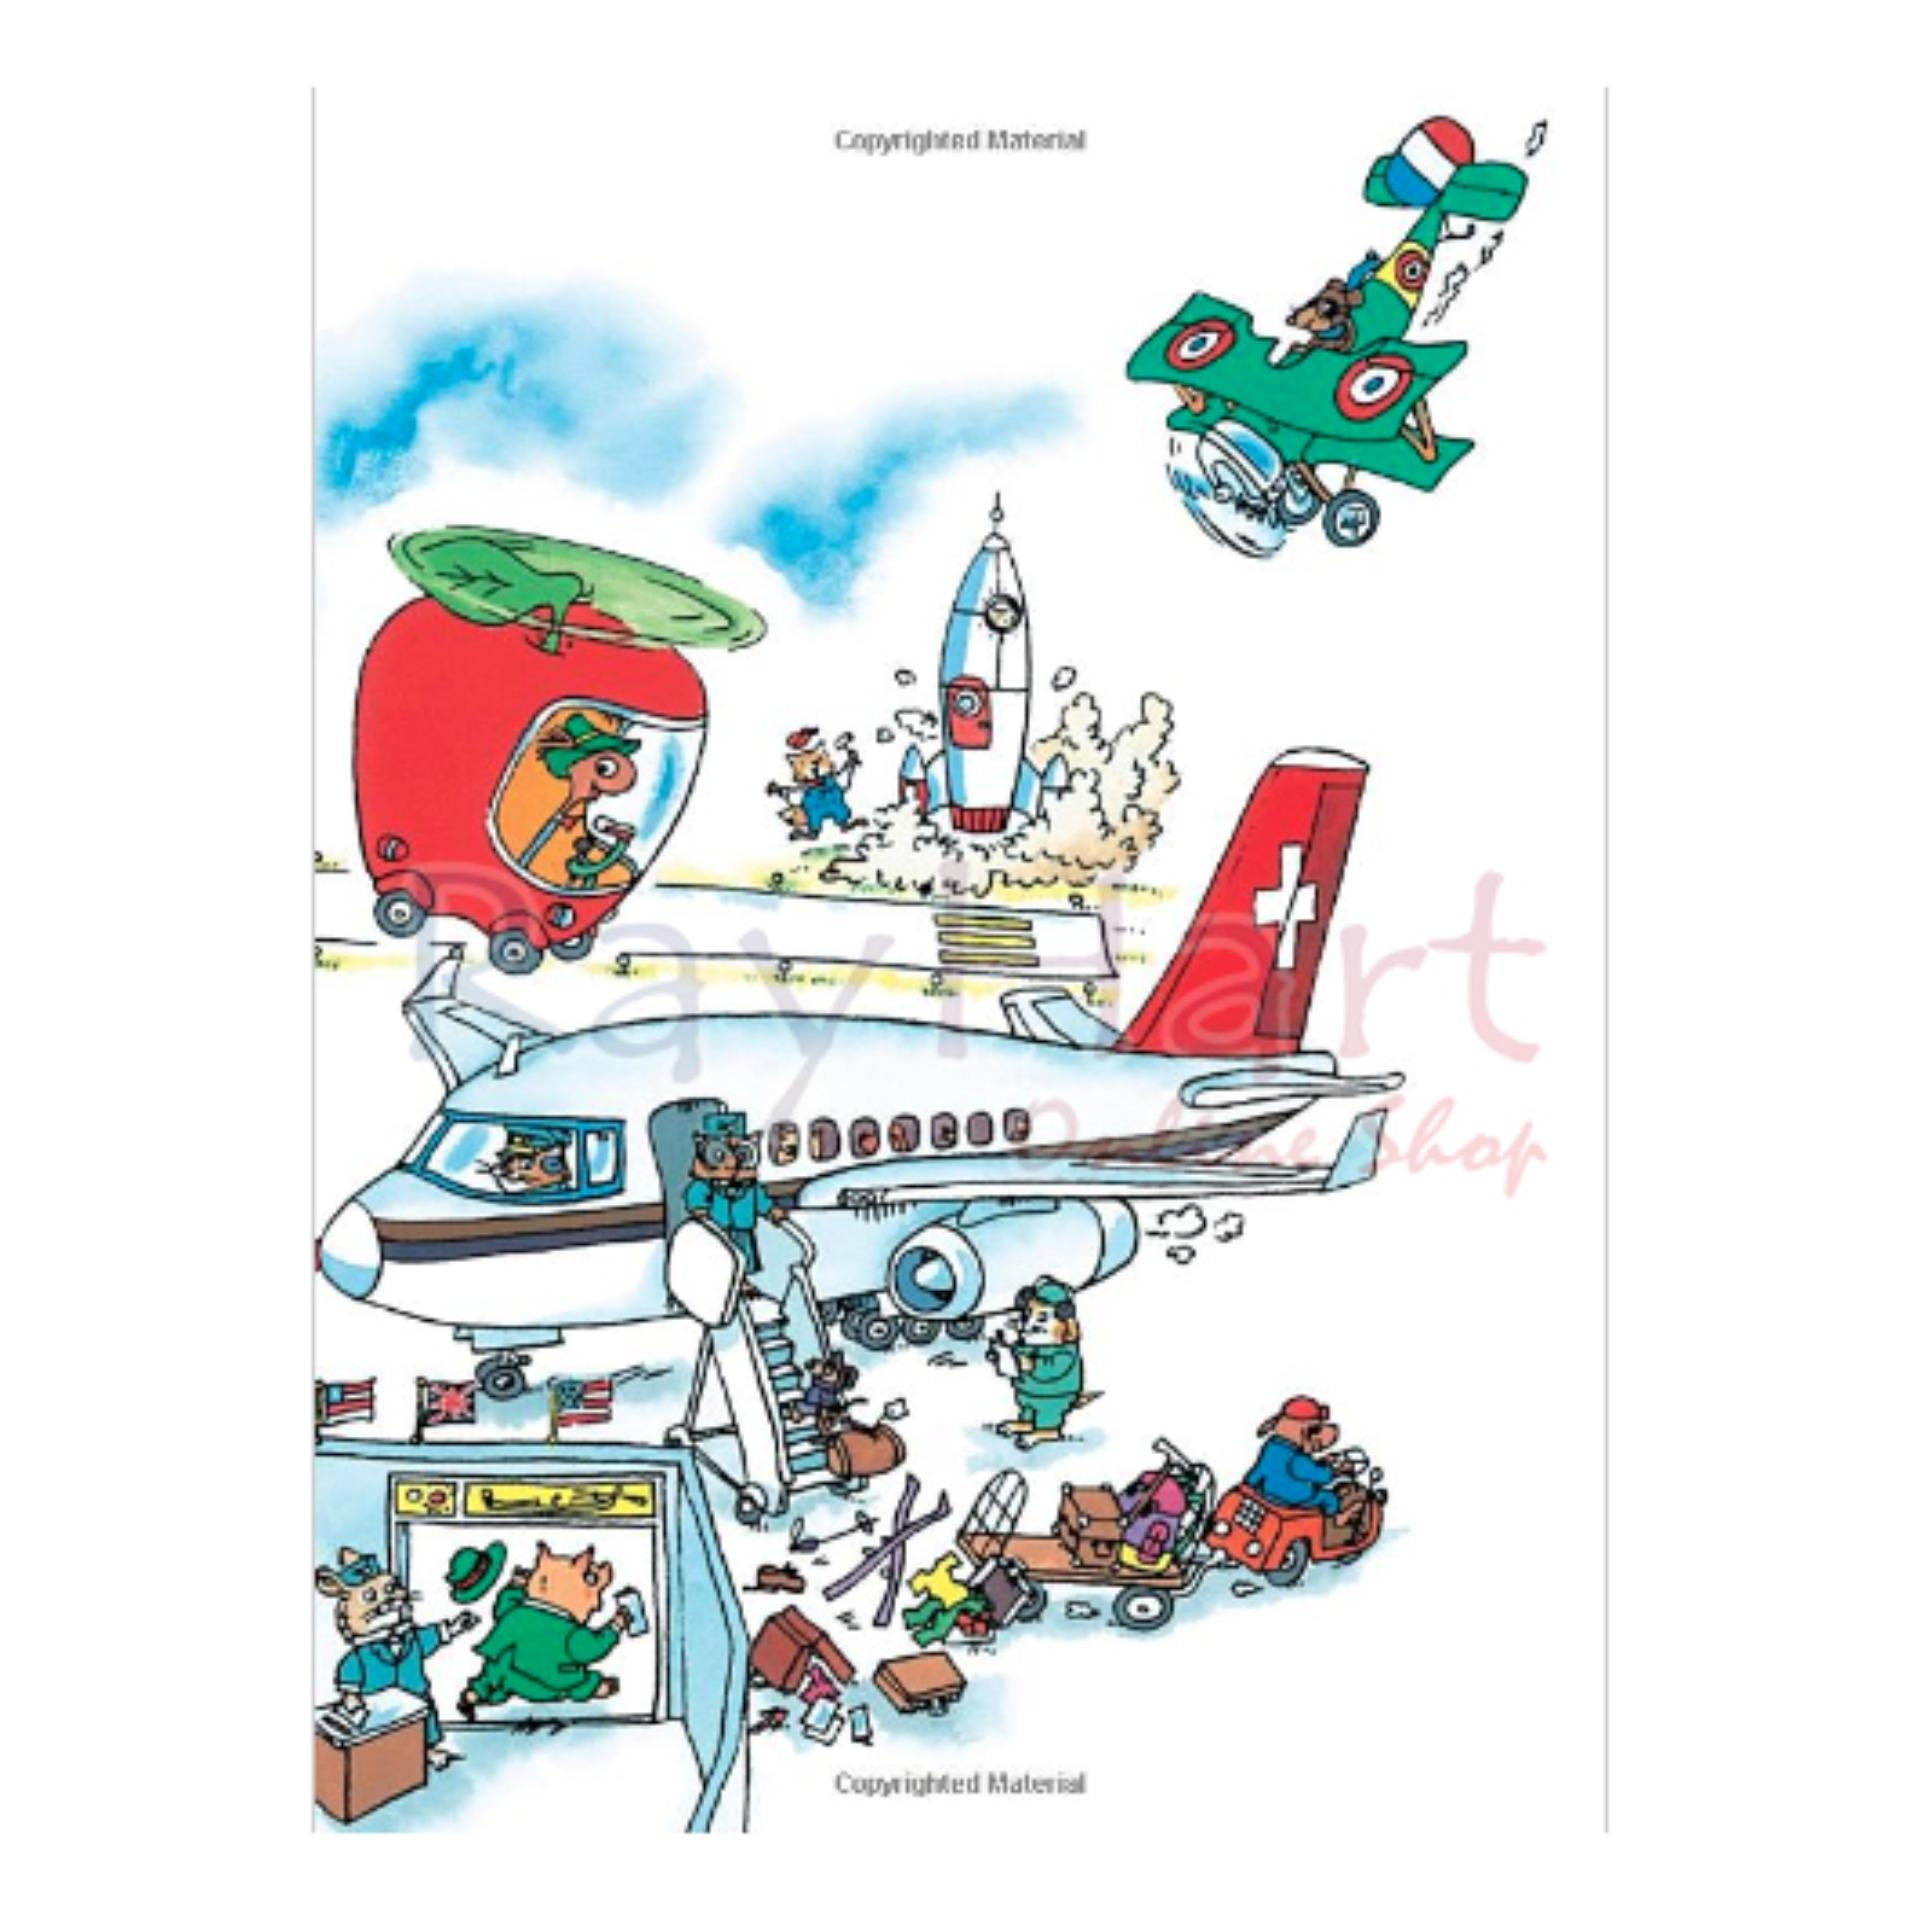 Buku Novel Import Bahasa Inggris Harry Potter Fantastic Beasts And Where To Find Them. Source · BahasaInggris; Buku Anak Import Richard Scarry's Planes by ...